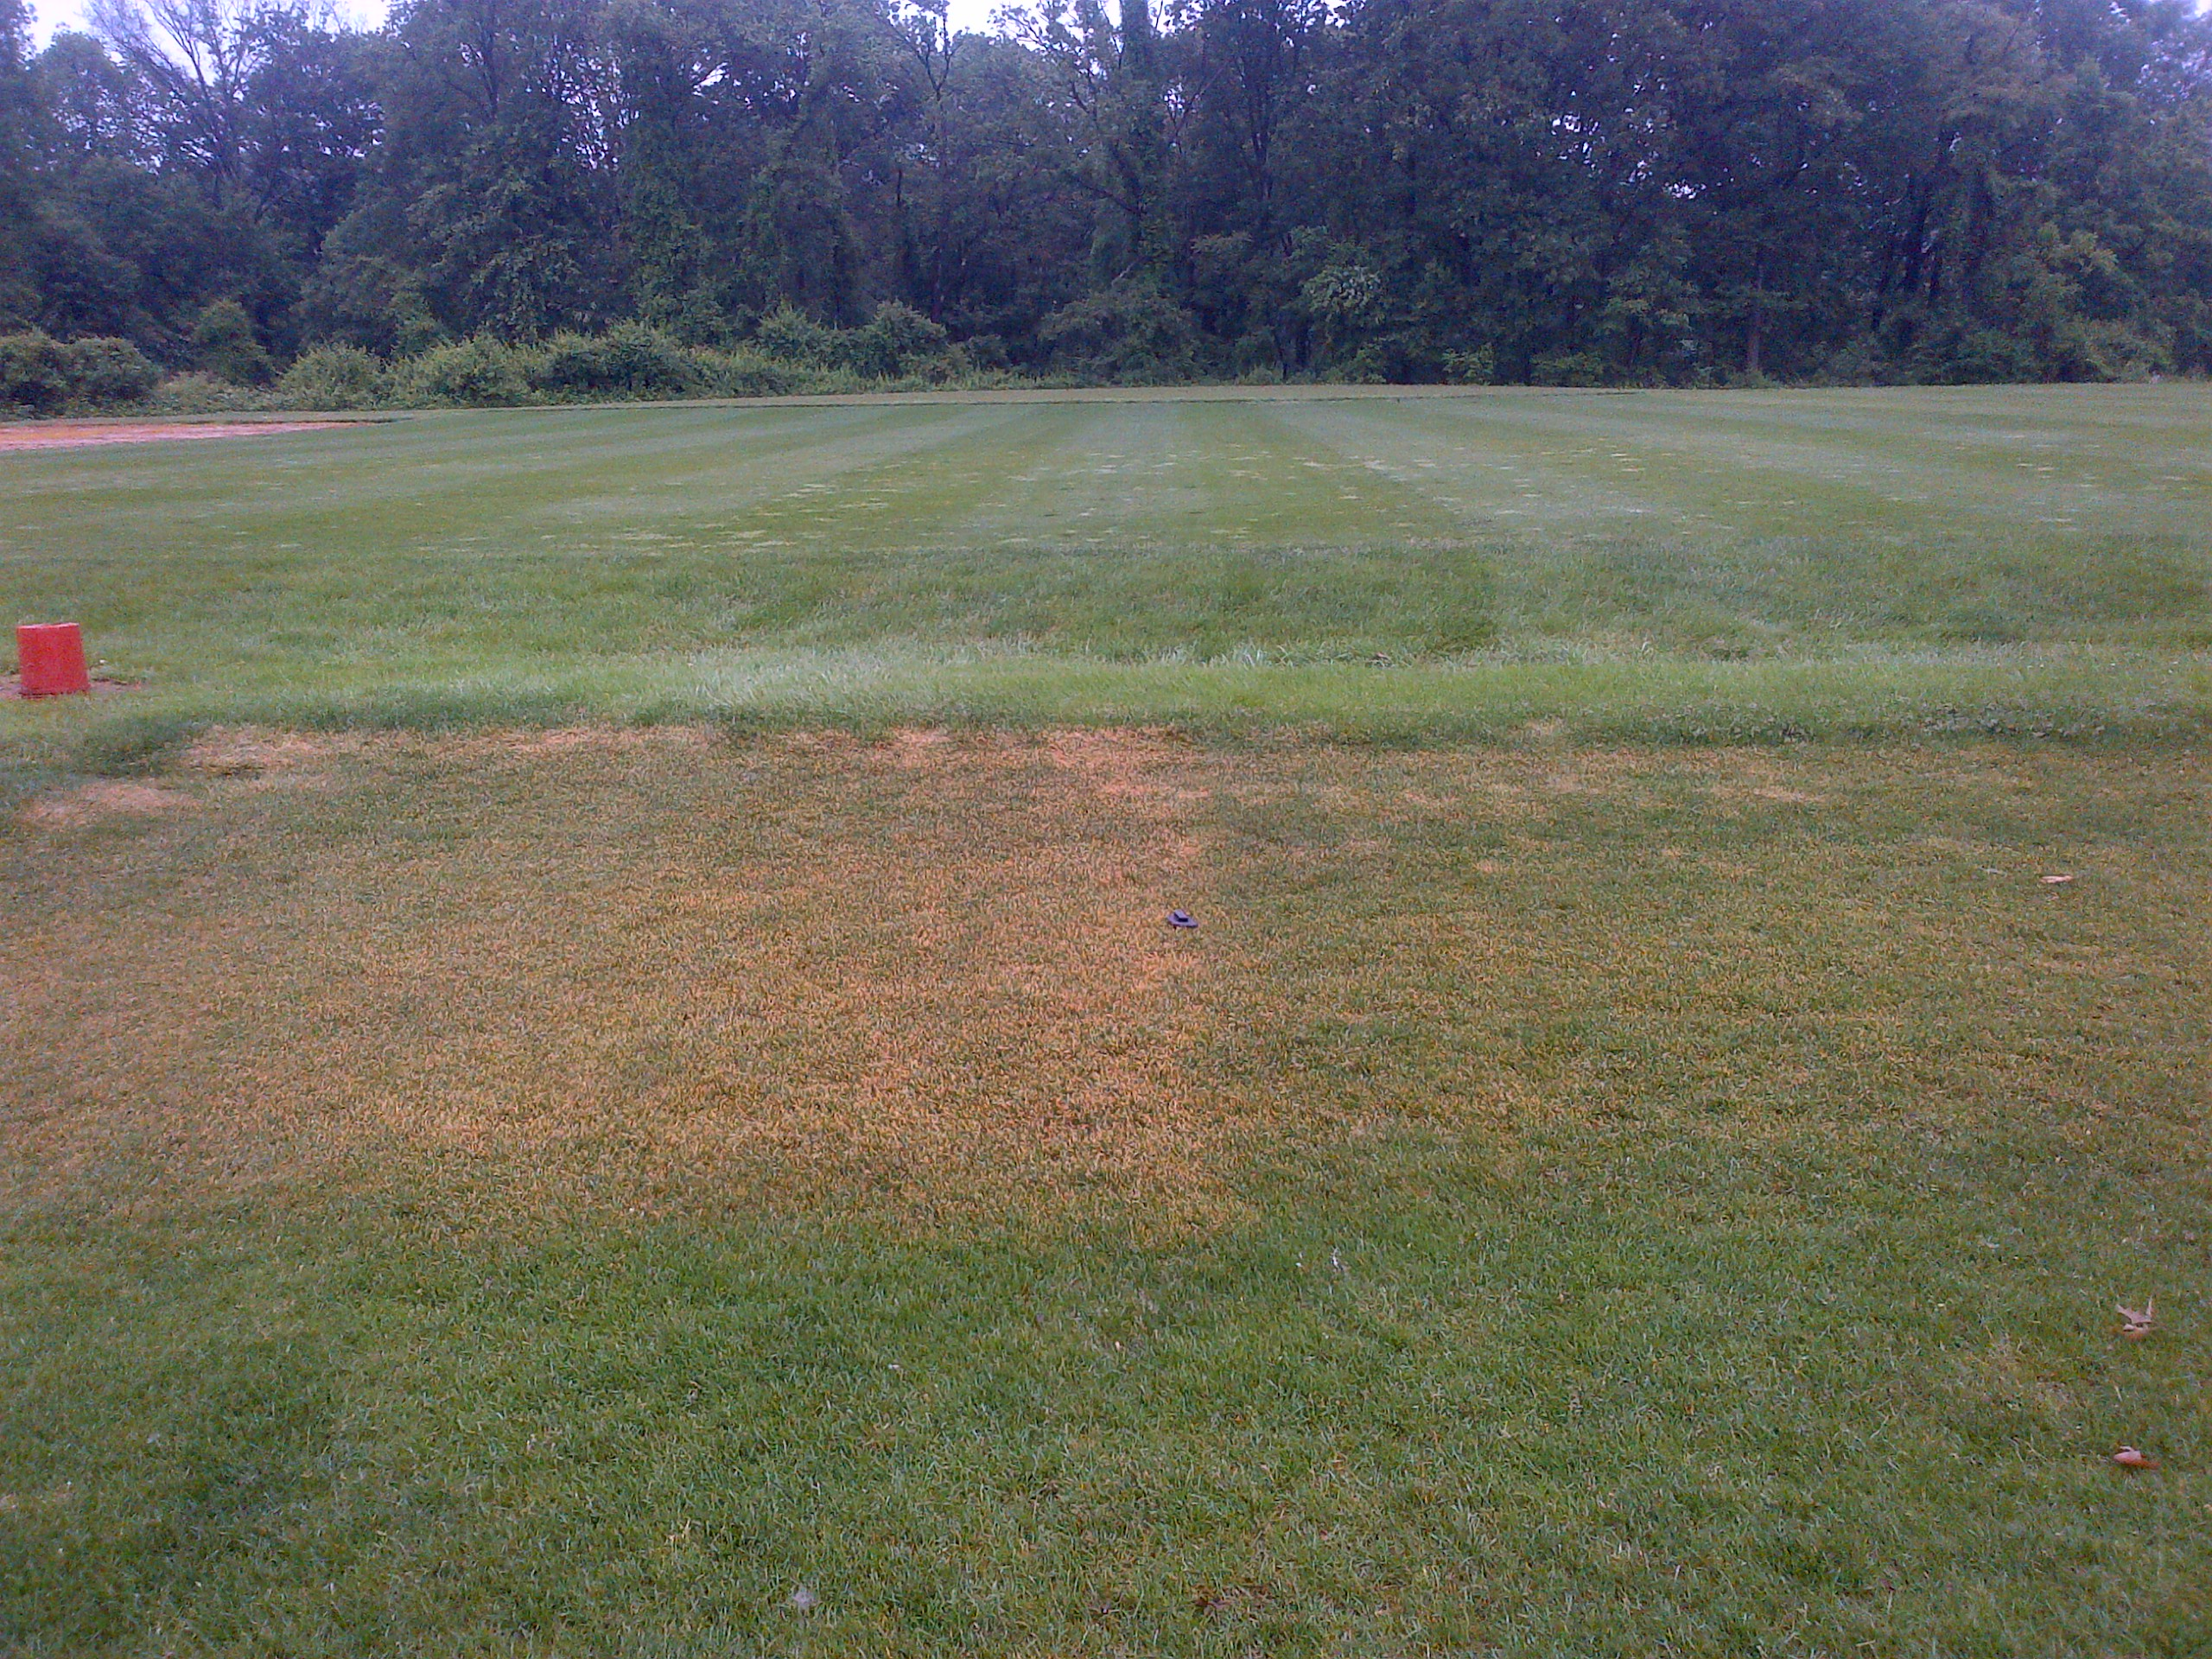 Kentucky Bluegrass Injury